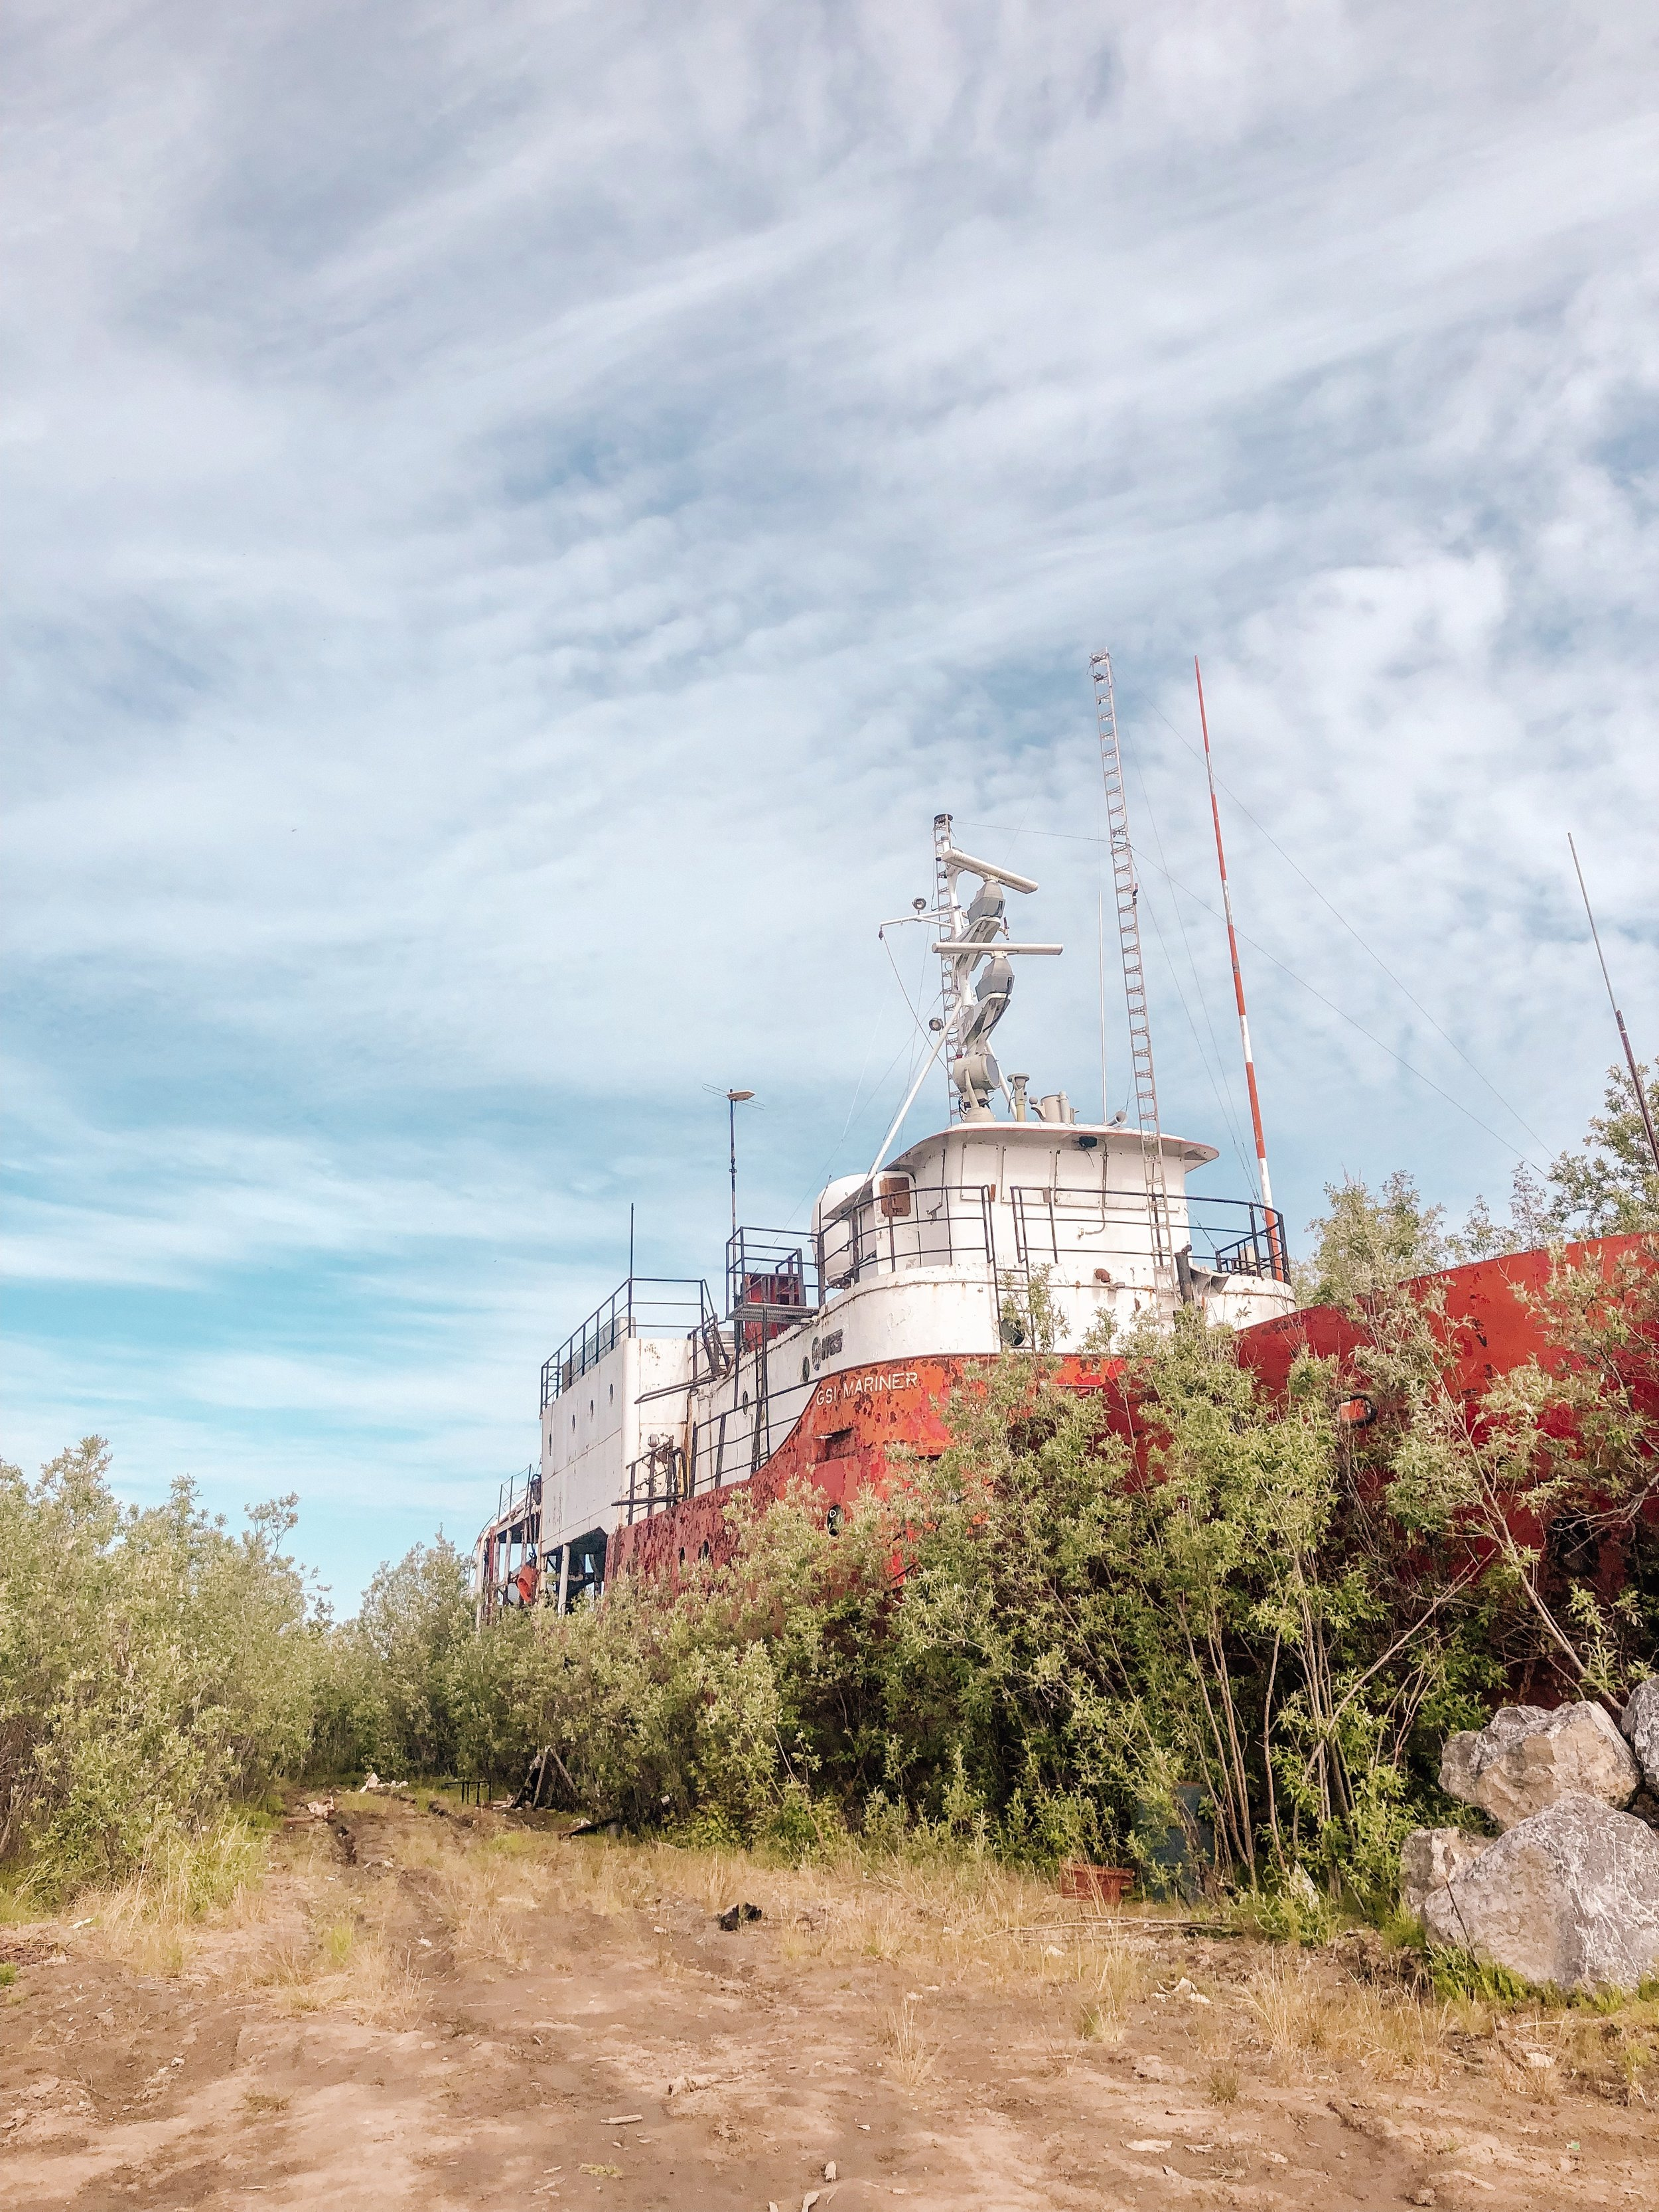 Abandoned ship in Inuvik